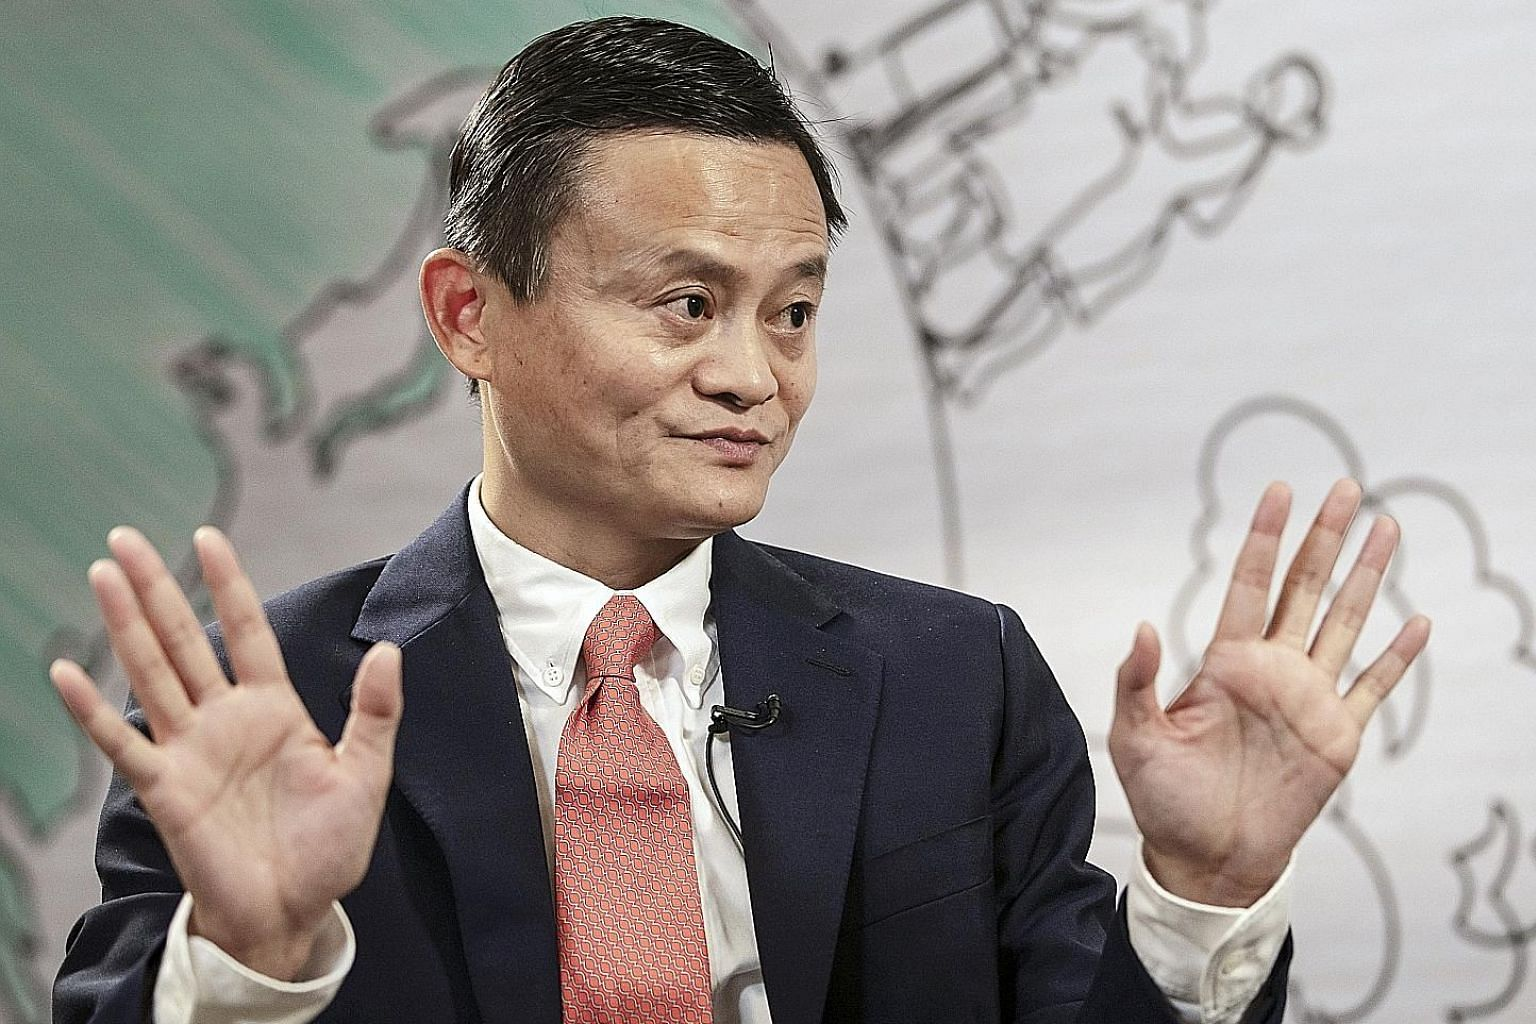 Alibaba's Jack Ma was down US$4 billion (S$5.5 billion) compared to a year ago, but returned to the top of the list for the first time since 2014 with a net worth of US$34.6 billion.